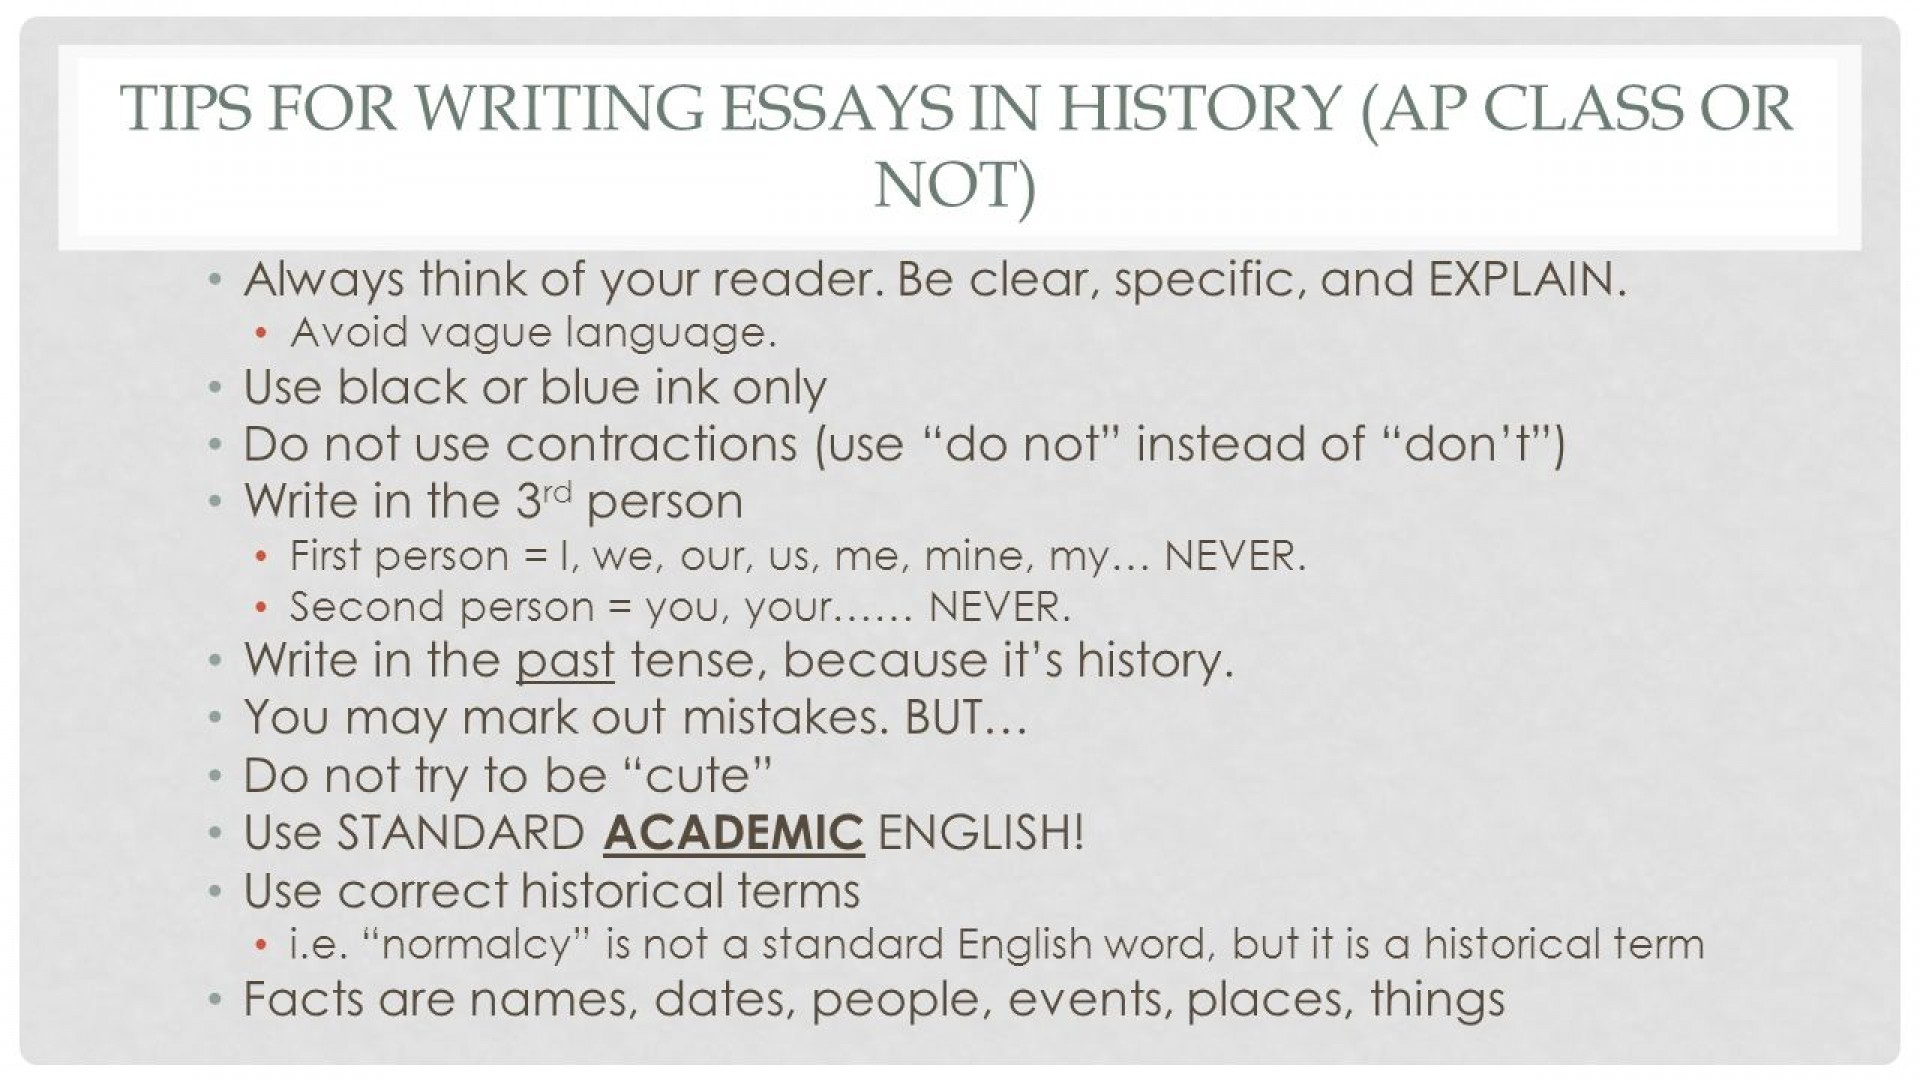 010 Essay Example How To Write Long The Question Ppt Downl In One Night For Ap Us History Proposal World With Little Information Quickly Apush Dreaded A Periodization Good Comparative 1920